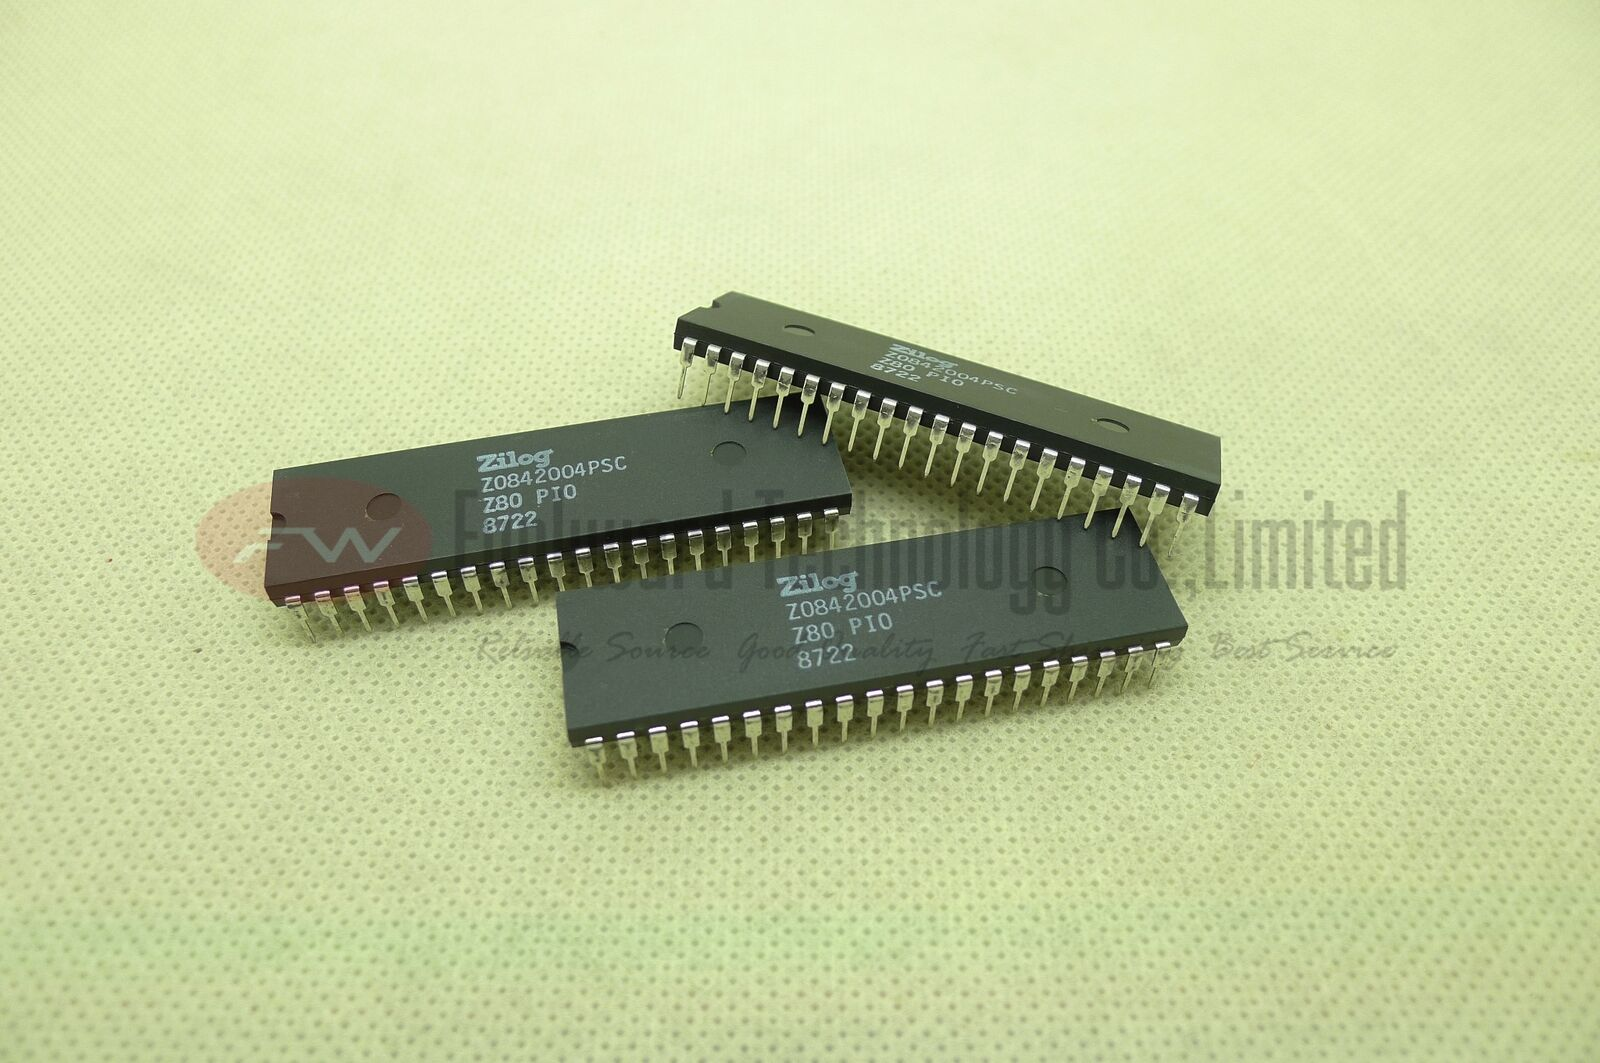 St Sgs-thomson Zilog Z0842004PSC Intergrated Circuit Z80 for sale online